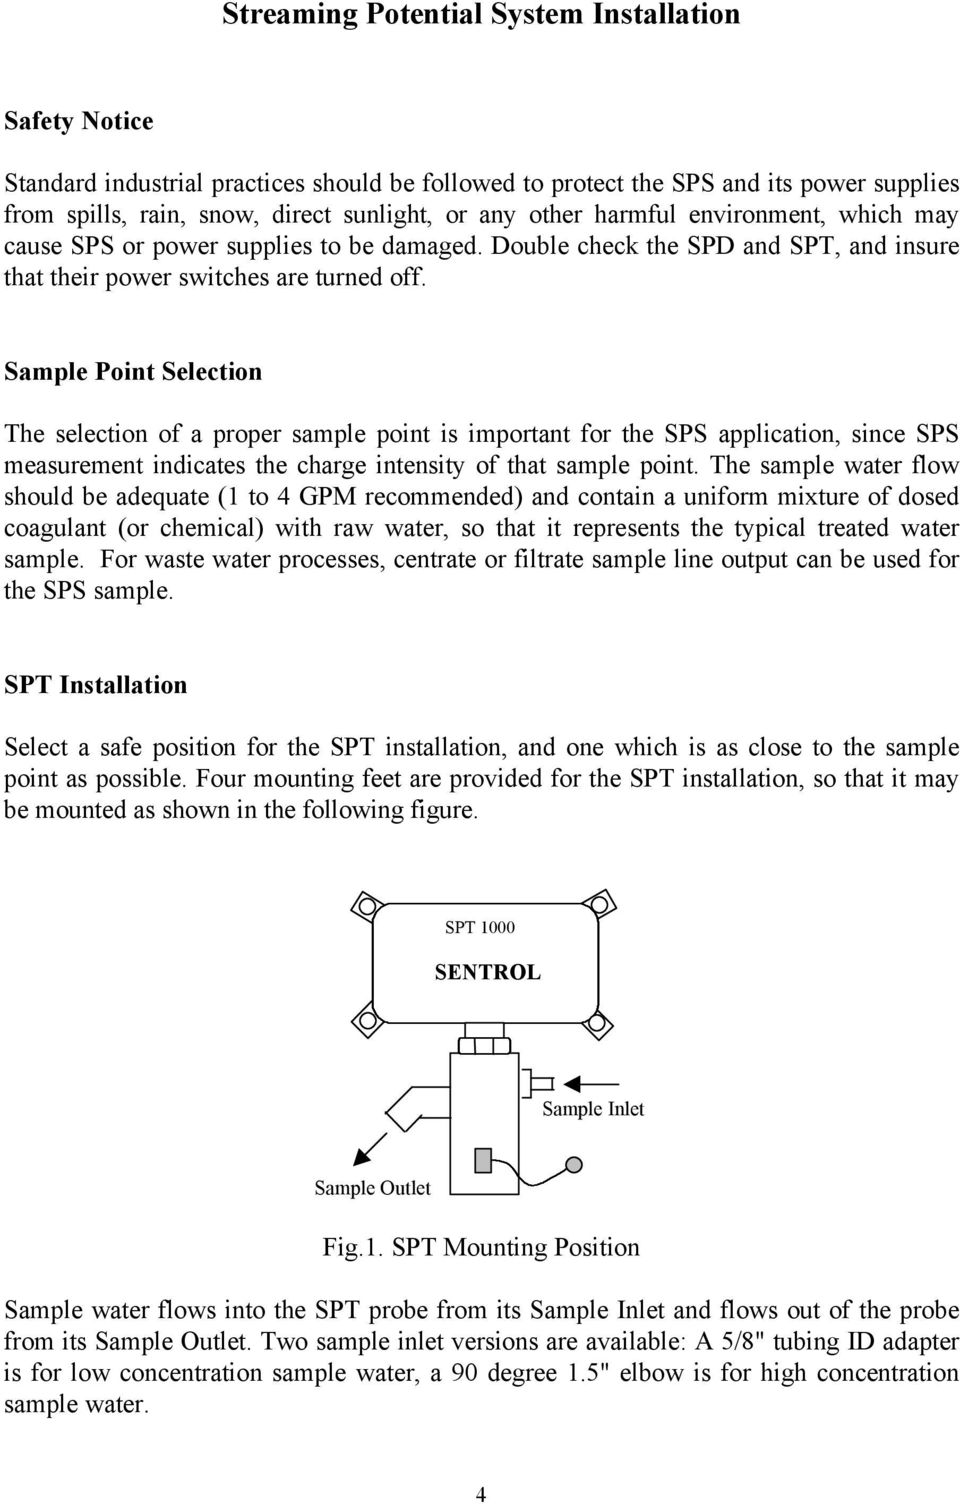 Sample Point Selection The selection of a proper sample point is important for the SPS application, since SPS measurement indicates the charge intensity of that sample point.